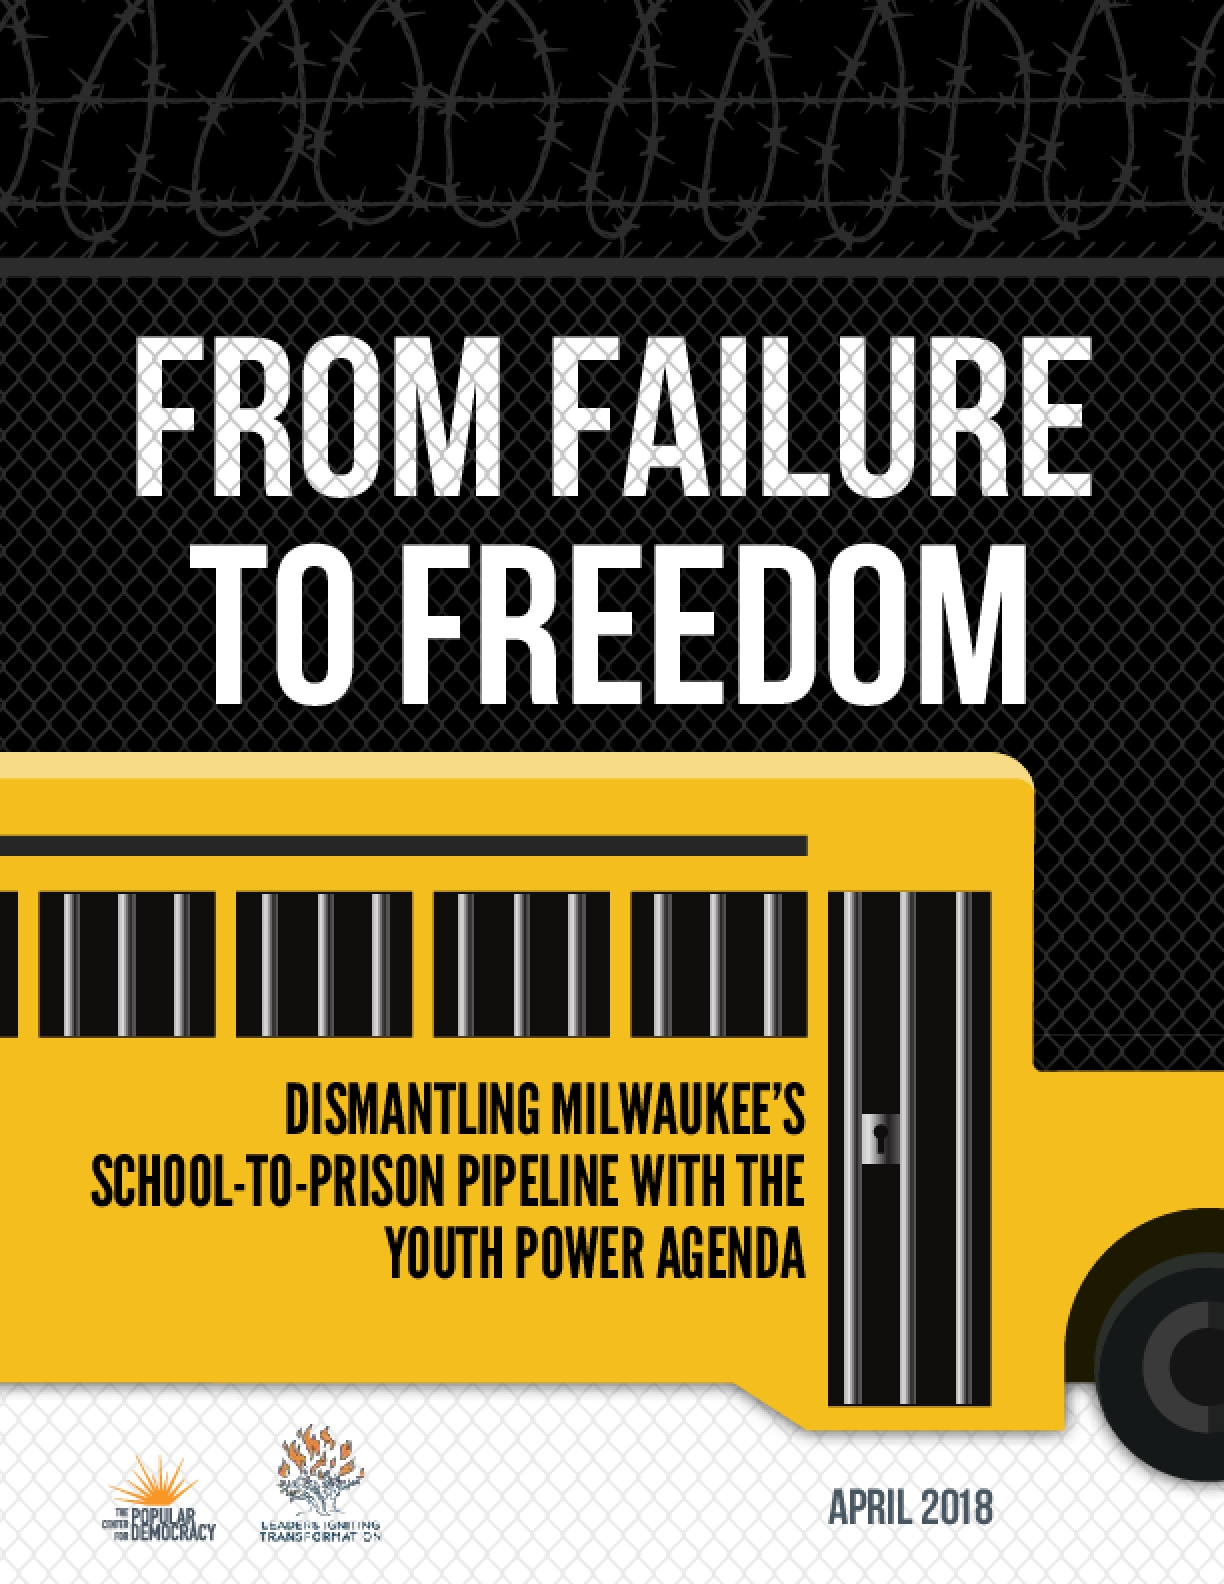 From Failure to Freedom: Dismantling Milwaukee's School-to-Prison Pipeline with the Youth Power Agenda